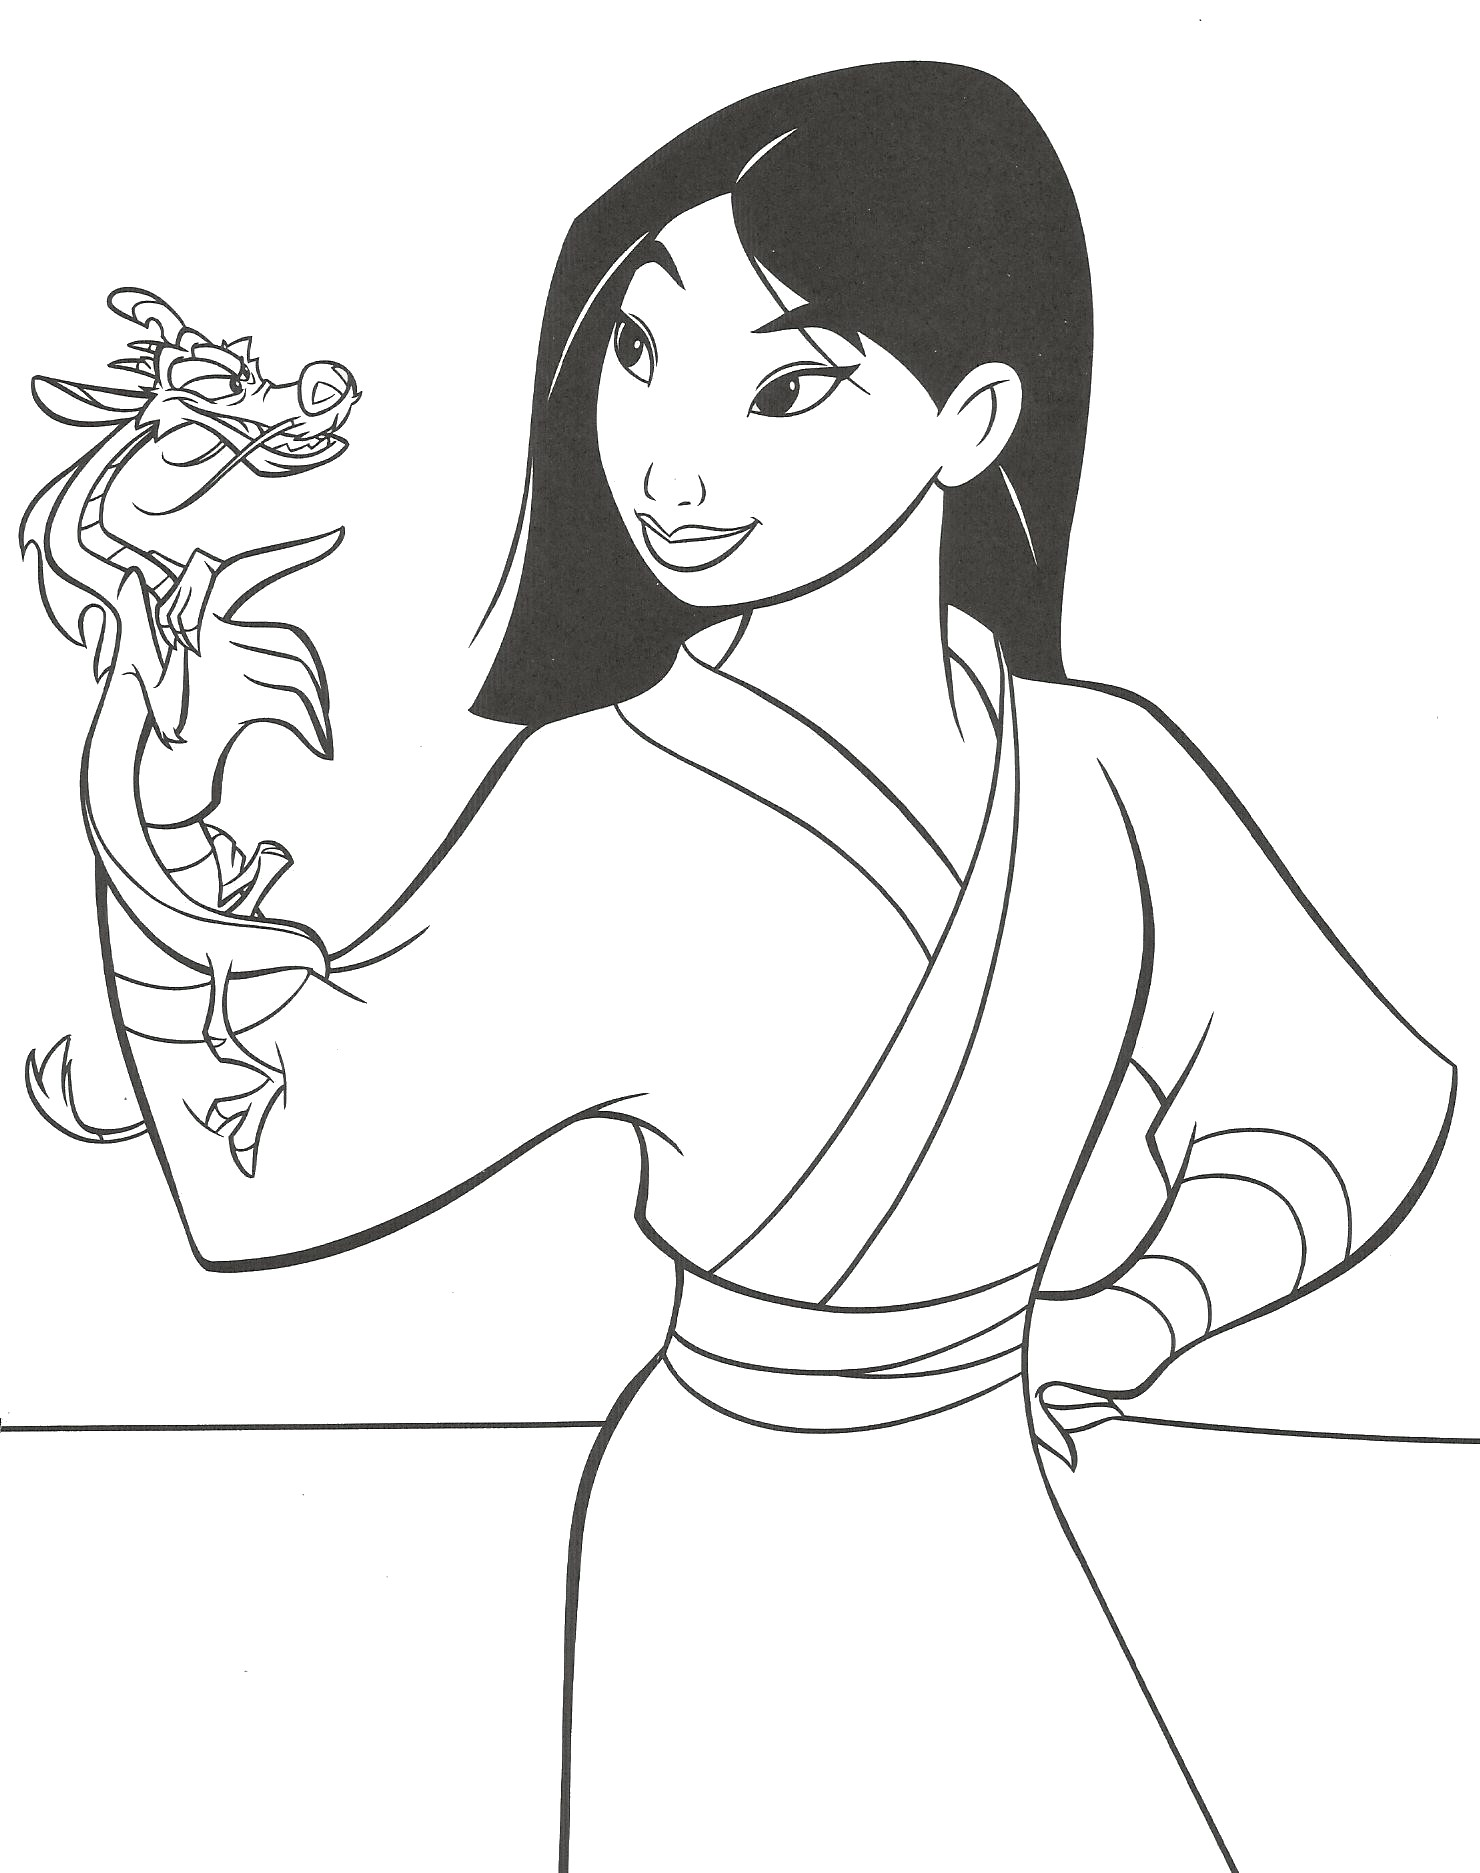 Mulan to download for free Mulan Kids Coloring Pages